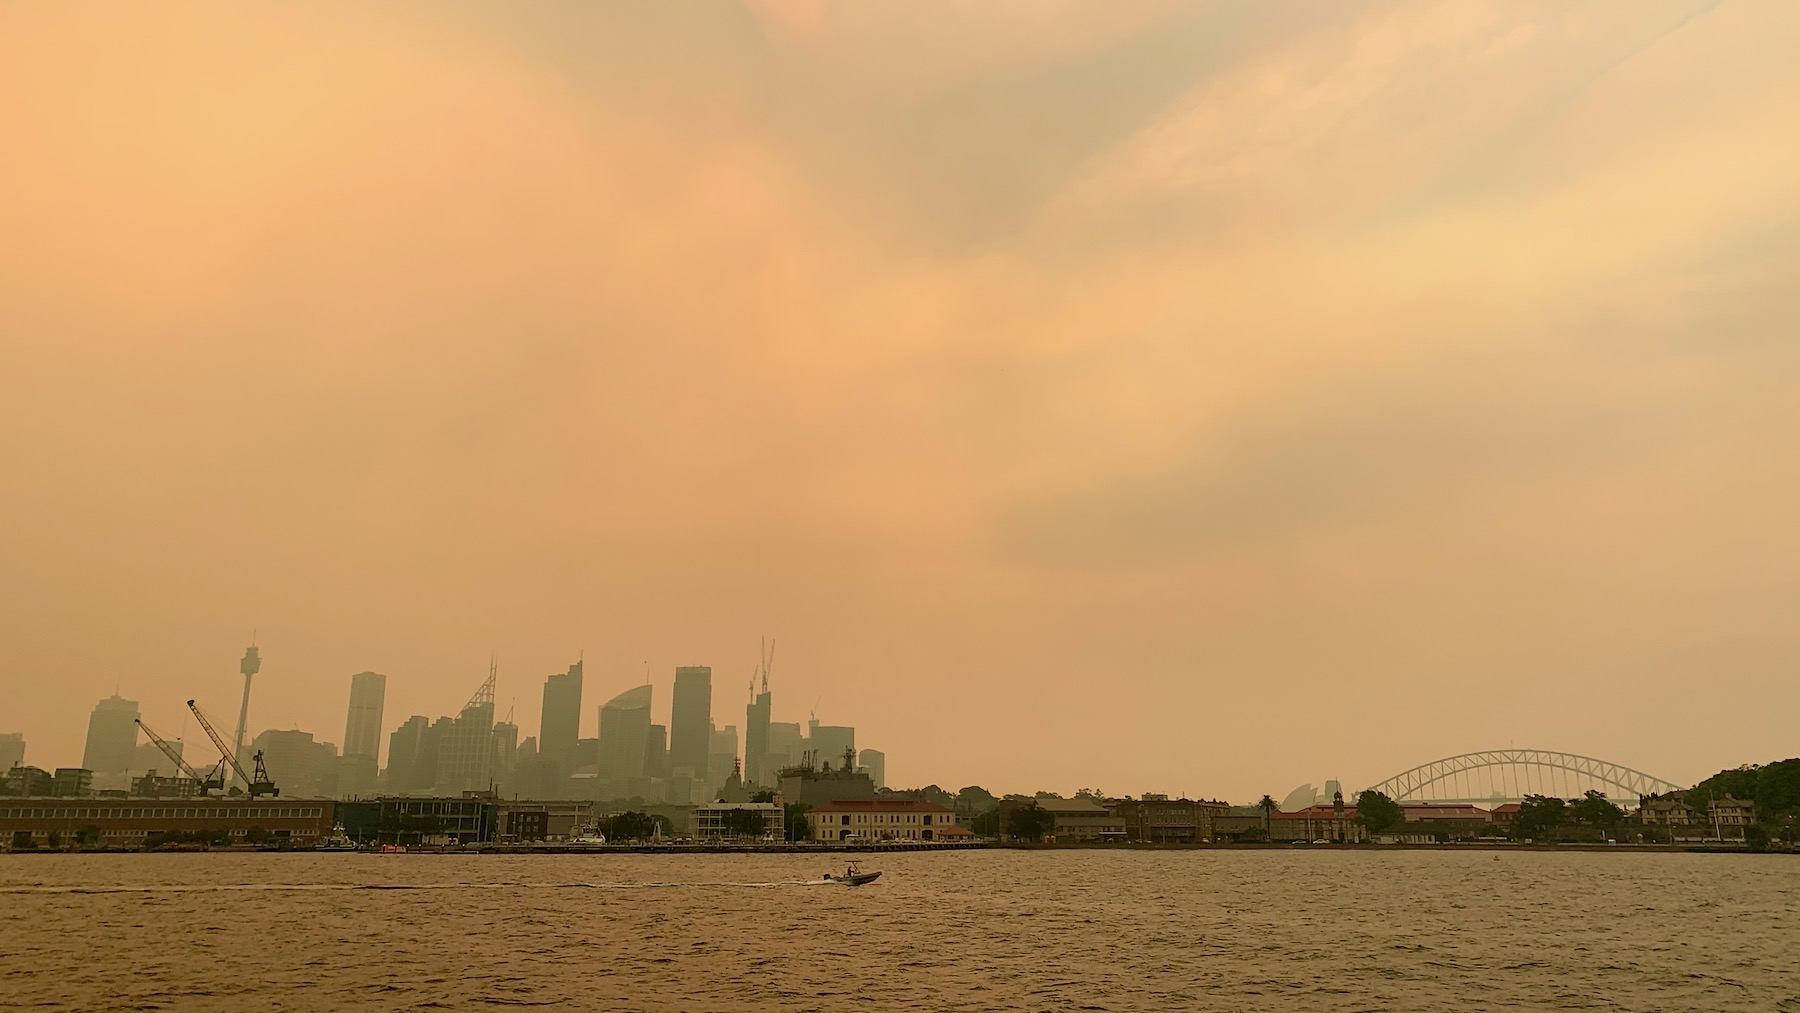 Sydney Harbour in the Bushfires